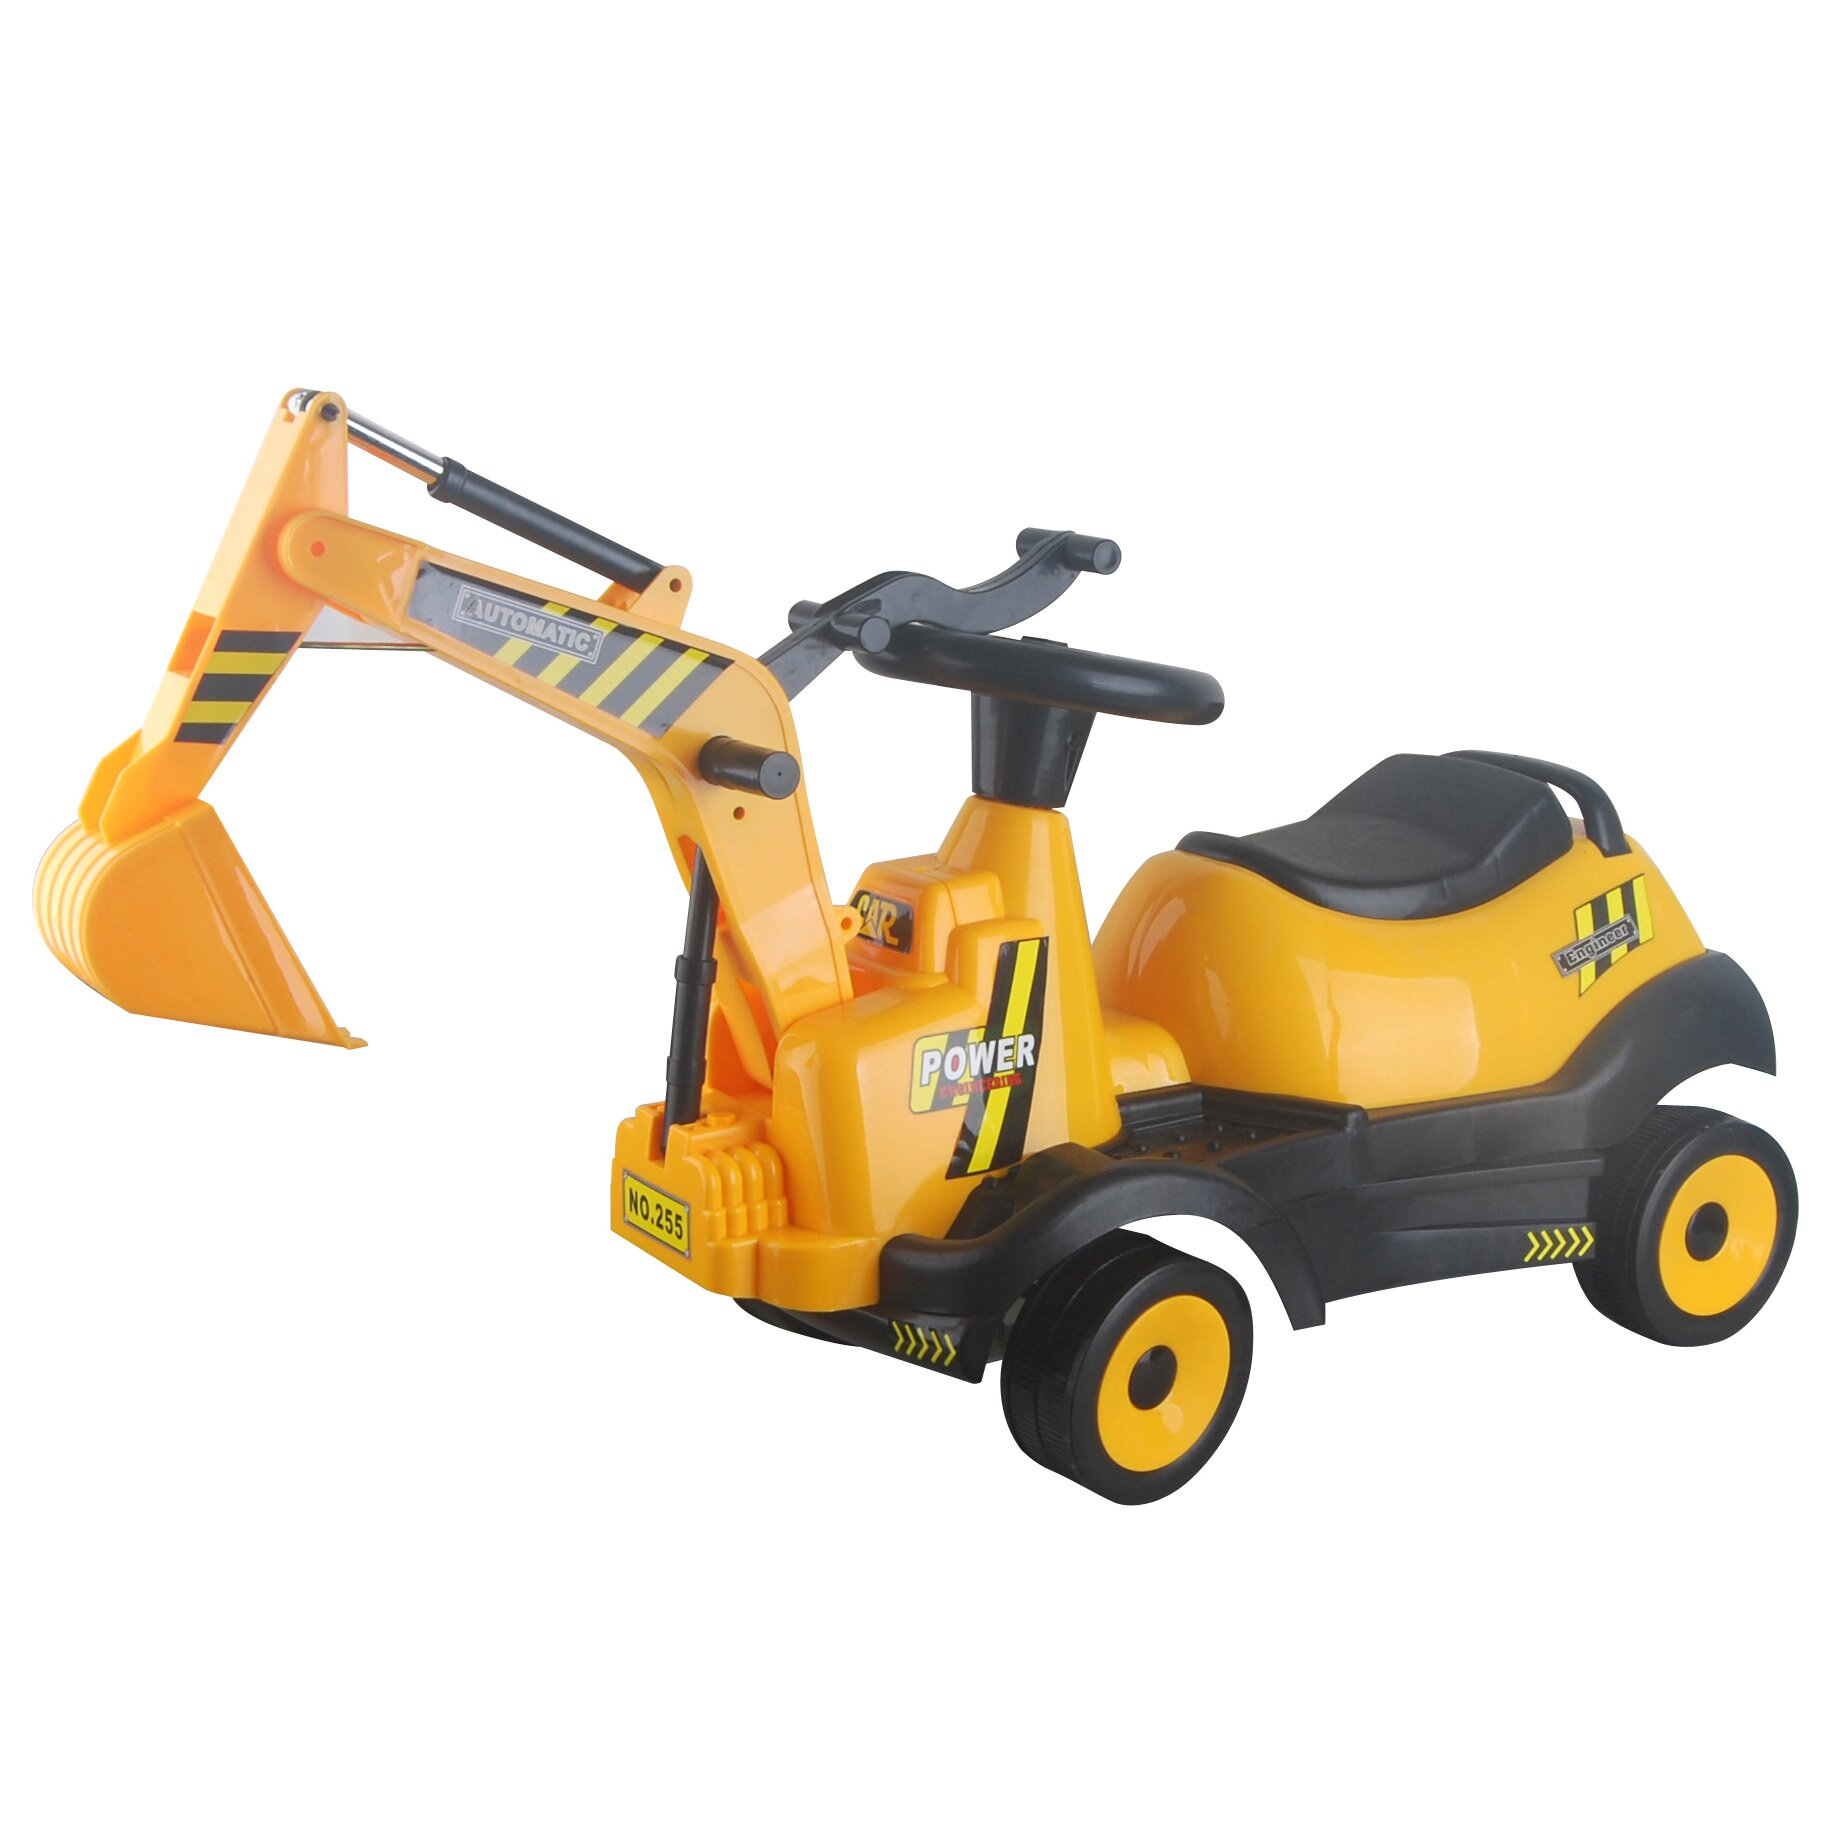 Vroom Rider 6v Ride On 4 Wheel Excavator Battery Powered